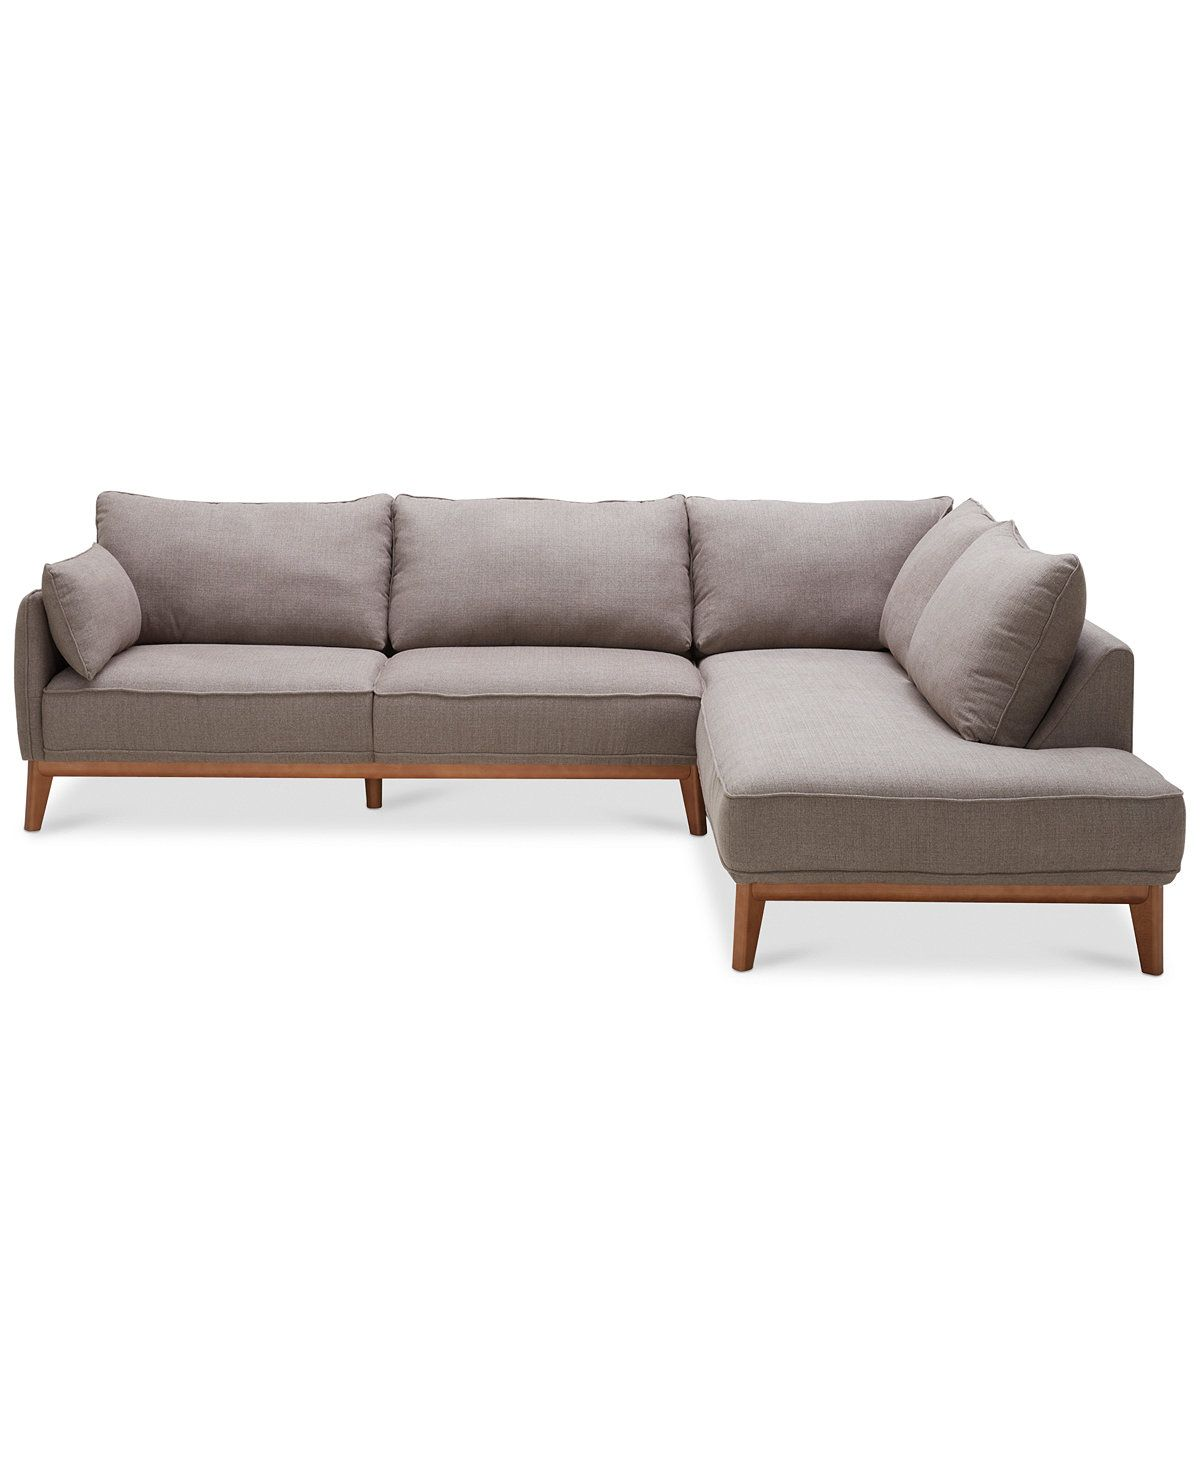 Miraculous Jollene 113 2 Pc Sectional Created For Macys Living Gmtry Best Dining Table And Chair Ideas Images Gmtryco